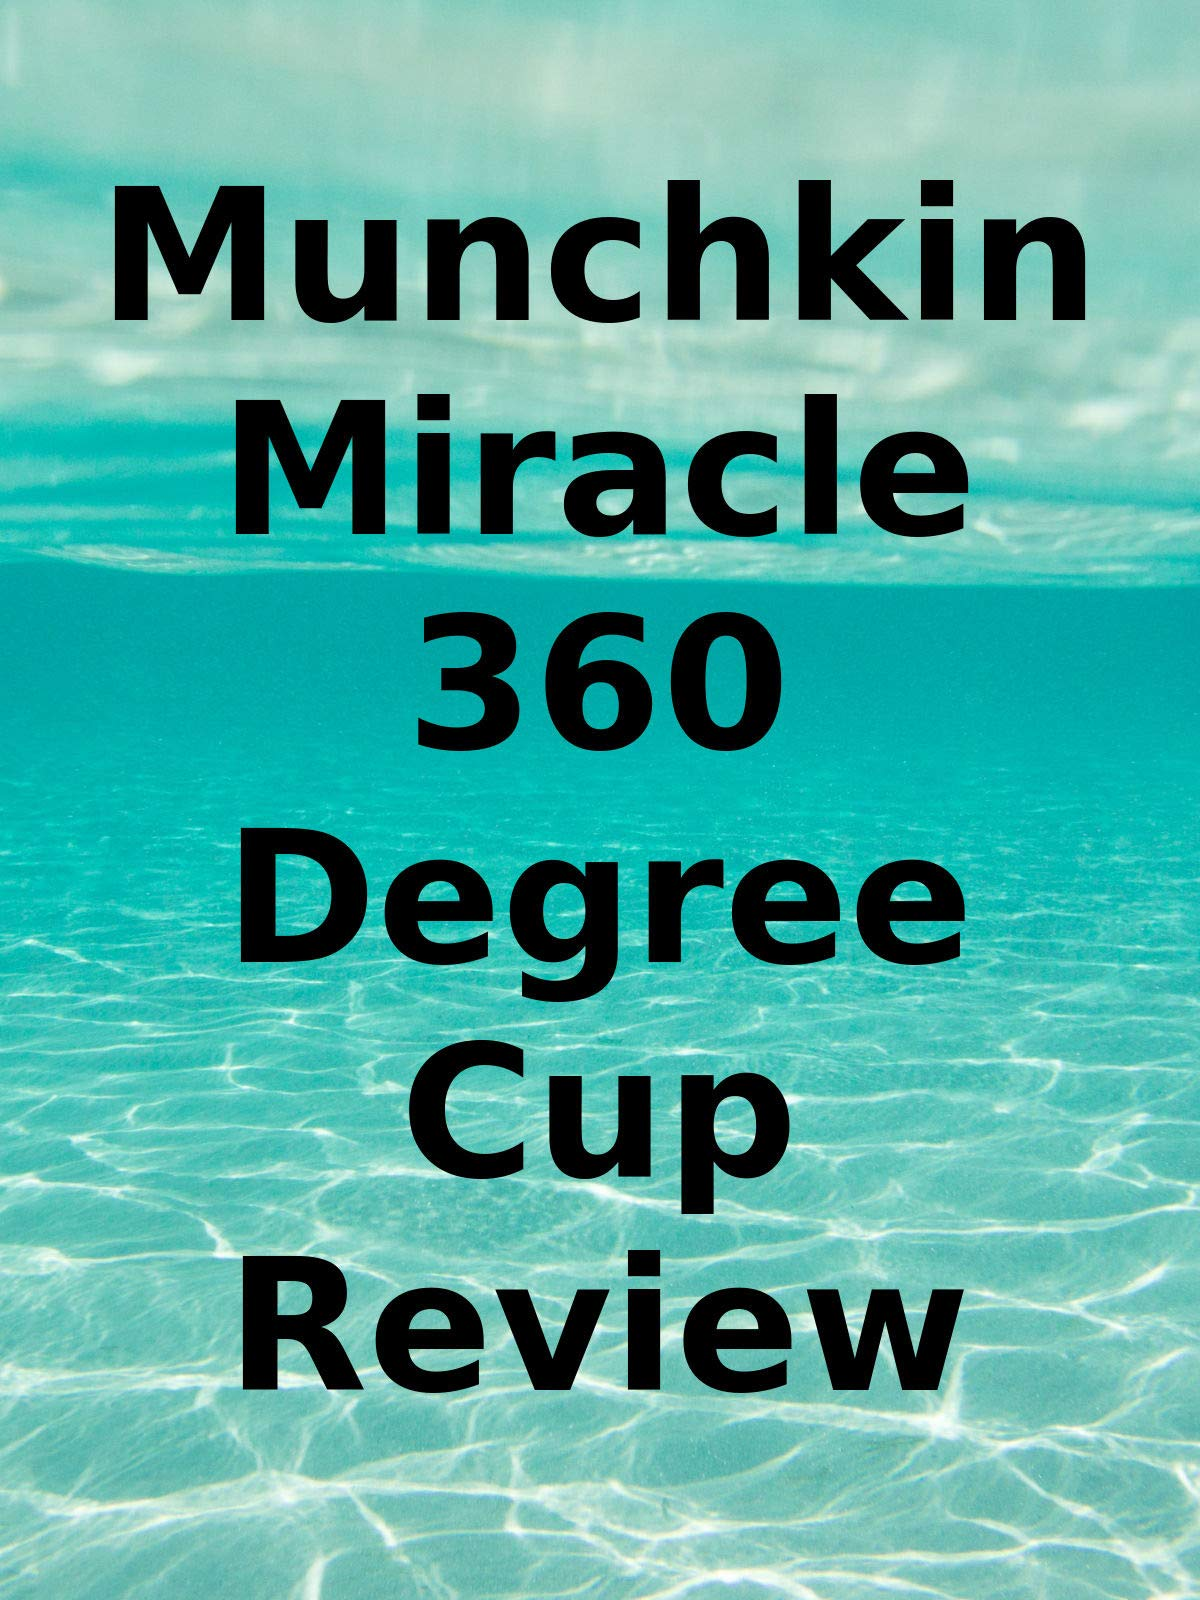 Review: Munchkin Miracle 360 Degree Cup Review on Amazon Prime Video UK